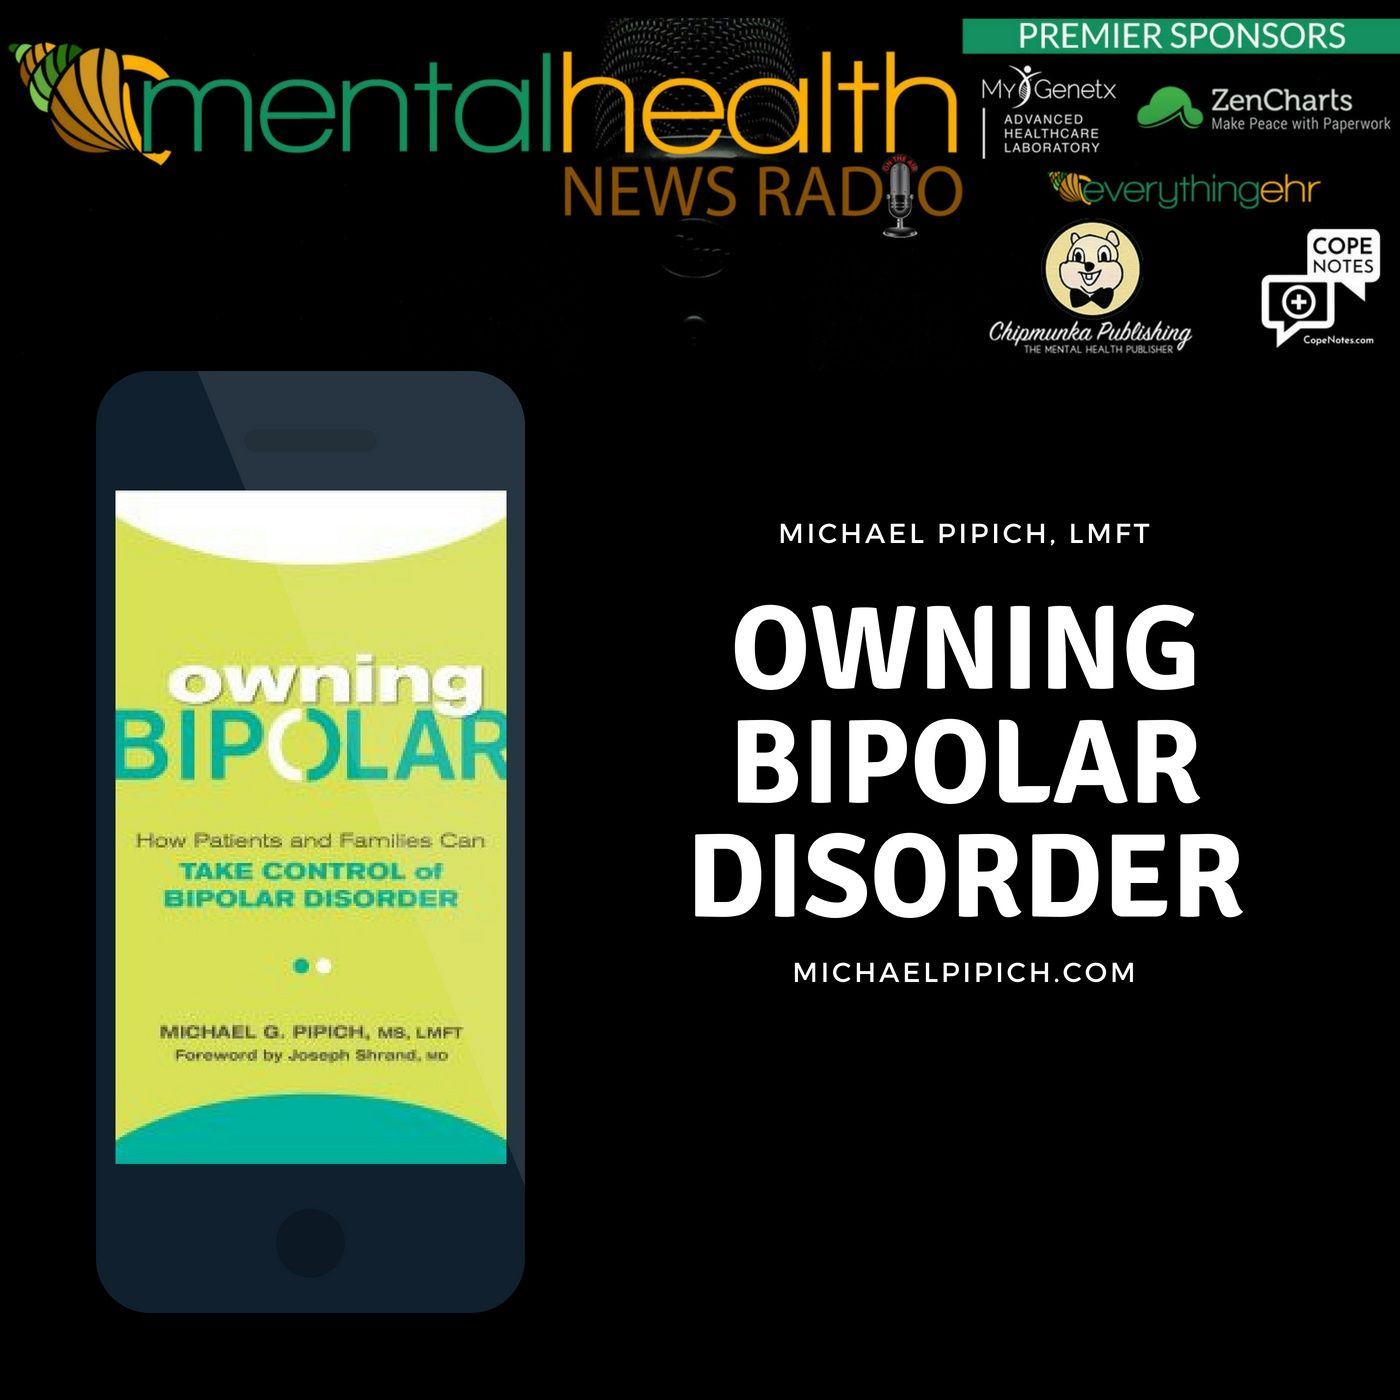 Mental Health News Radio - Owning Bipolar Disorder with Michael Pipich, LMFT